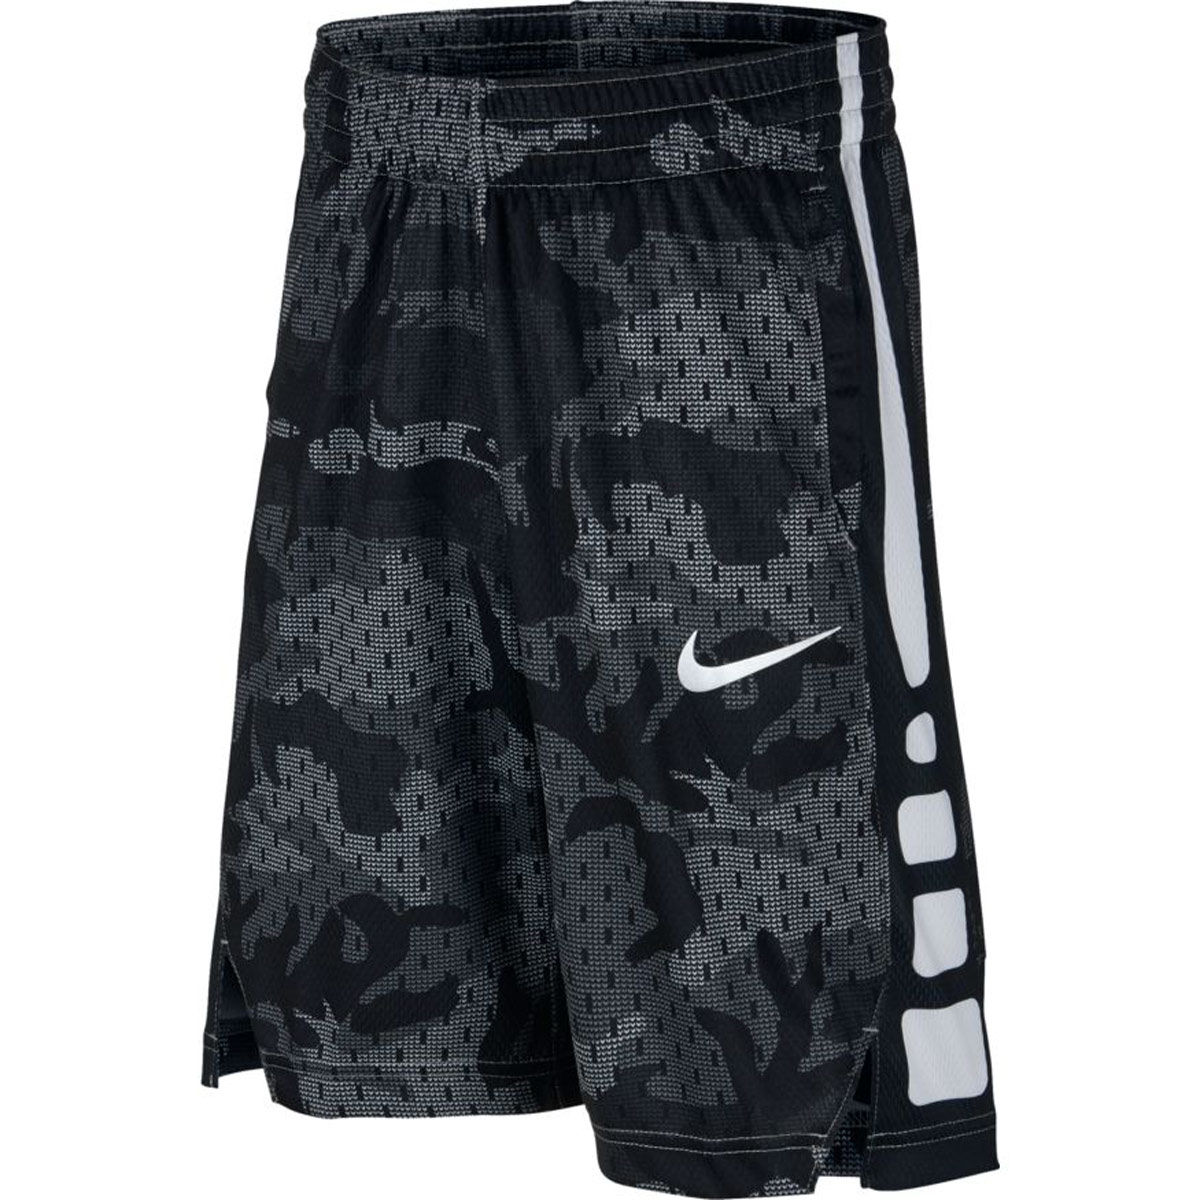 Nike Elite Stripe Boys Printed Short